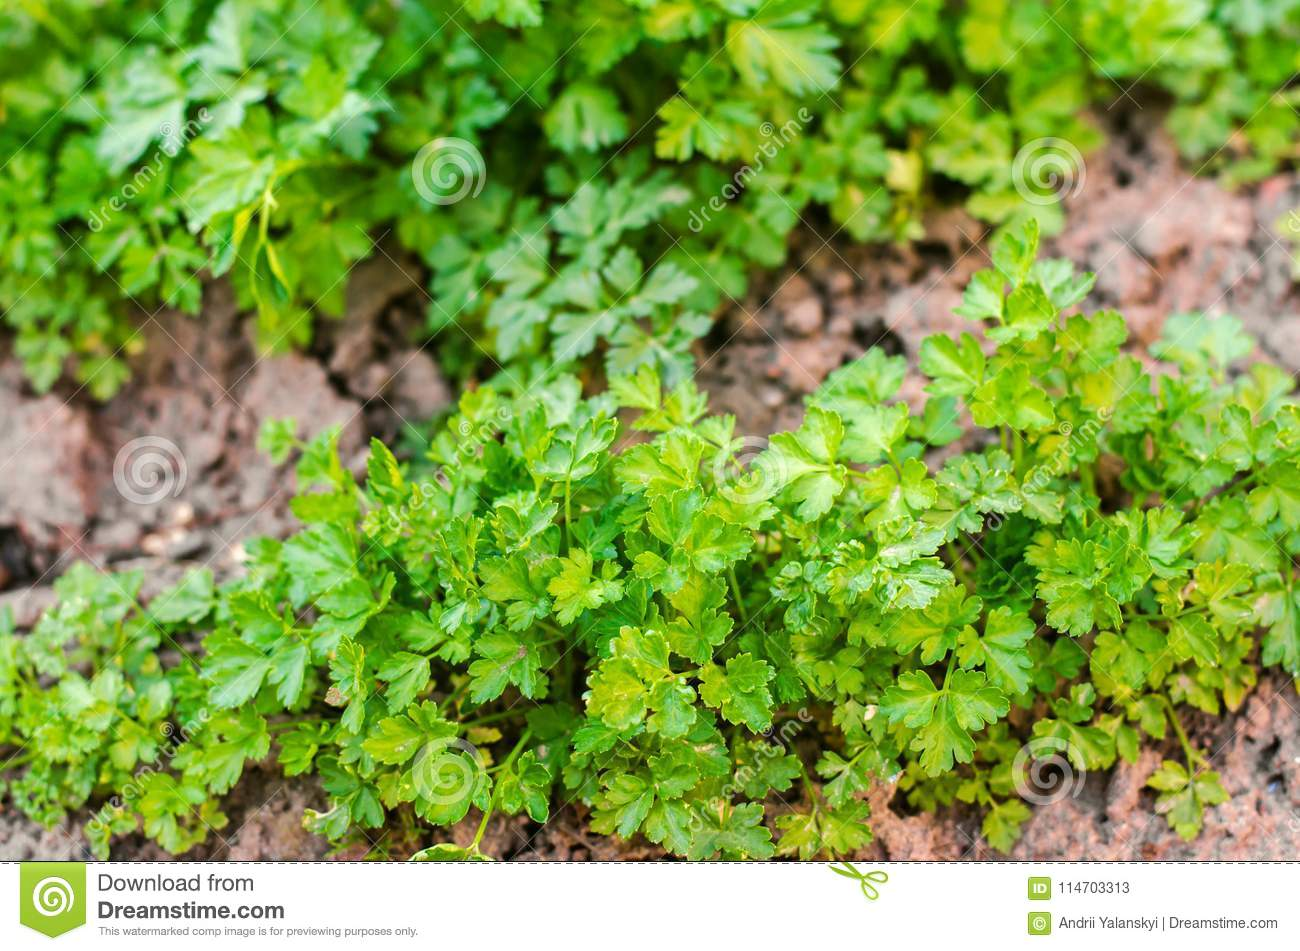 Fresh parsley in the garden, growing in rows. close-up. field, farm, growing herbs